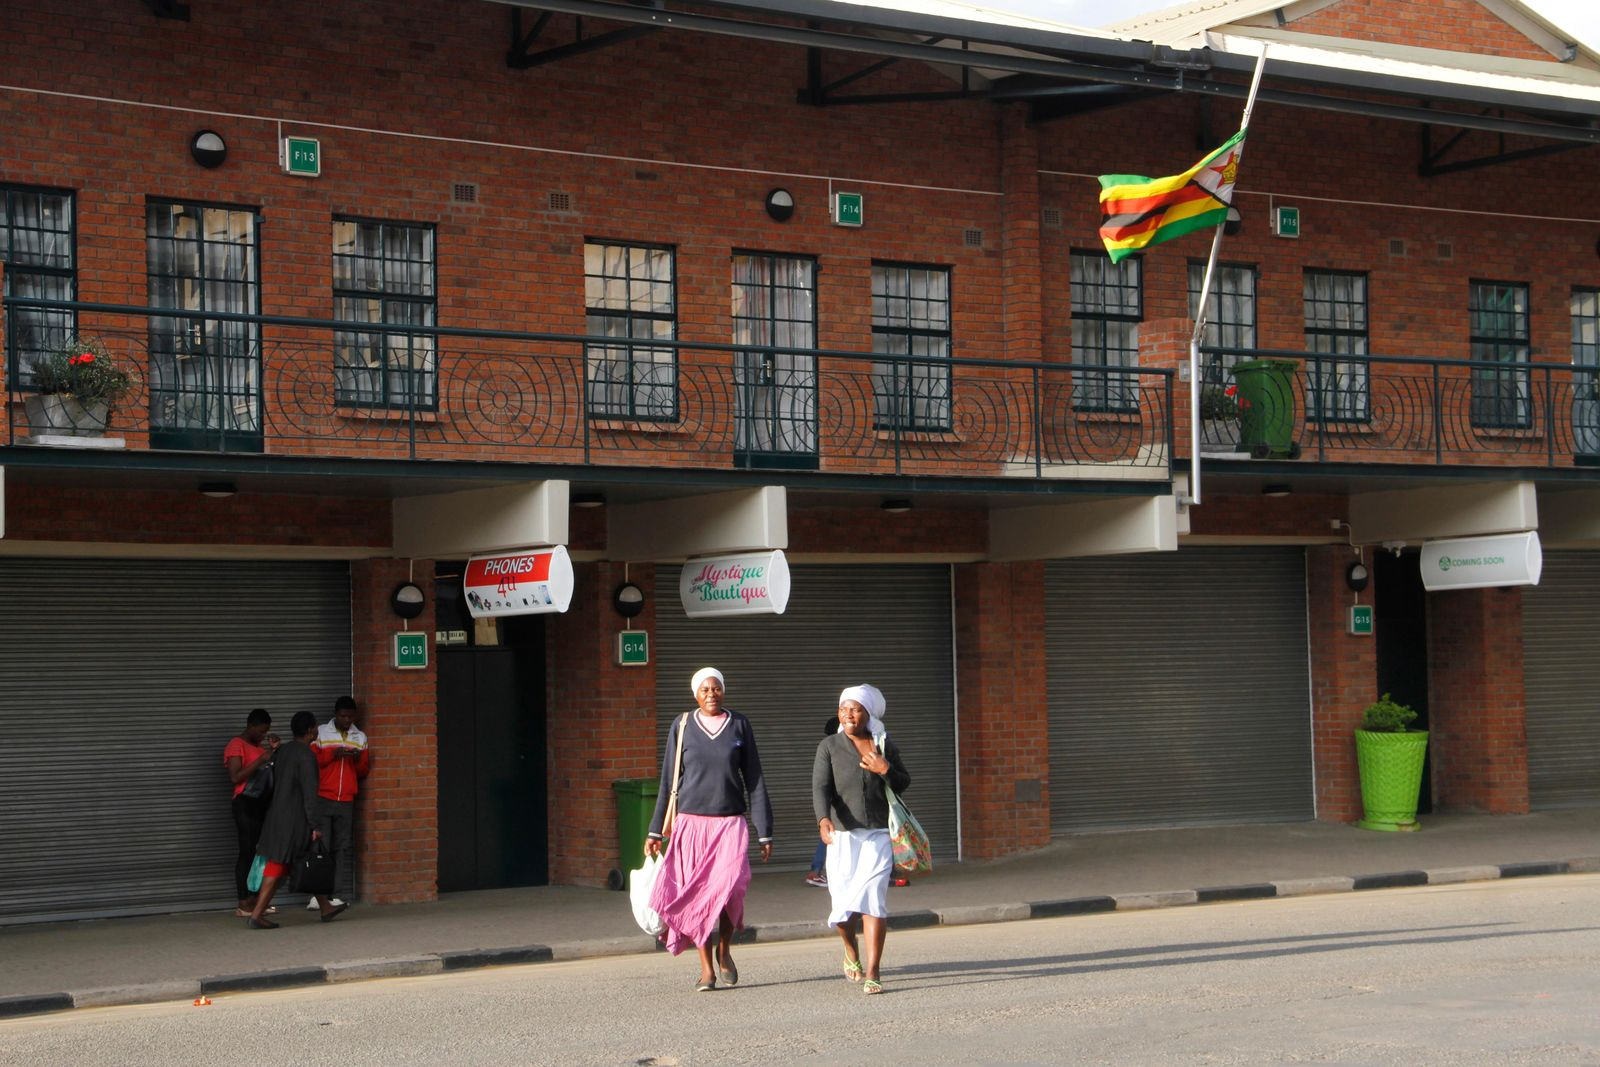 The Zimbabwean flag flies at half-mast on a street in Harare, Saturday, Sept. 7, 2019. Zimbabwe's former leader Robert Mugabe, who ruled for 37 years after independence from white minority rule in 1980, has died at the age of 95. (AP Photo/Tsvangirayi Mukwazhi)